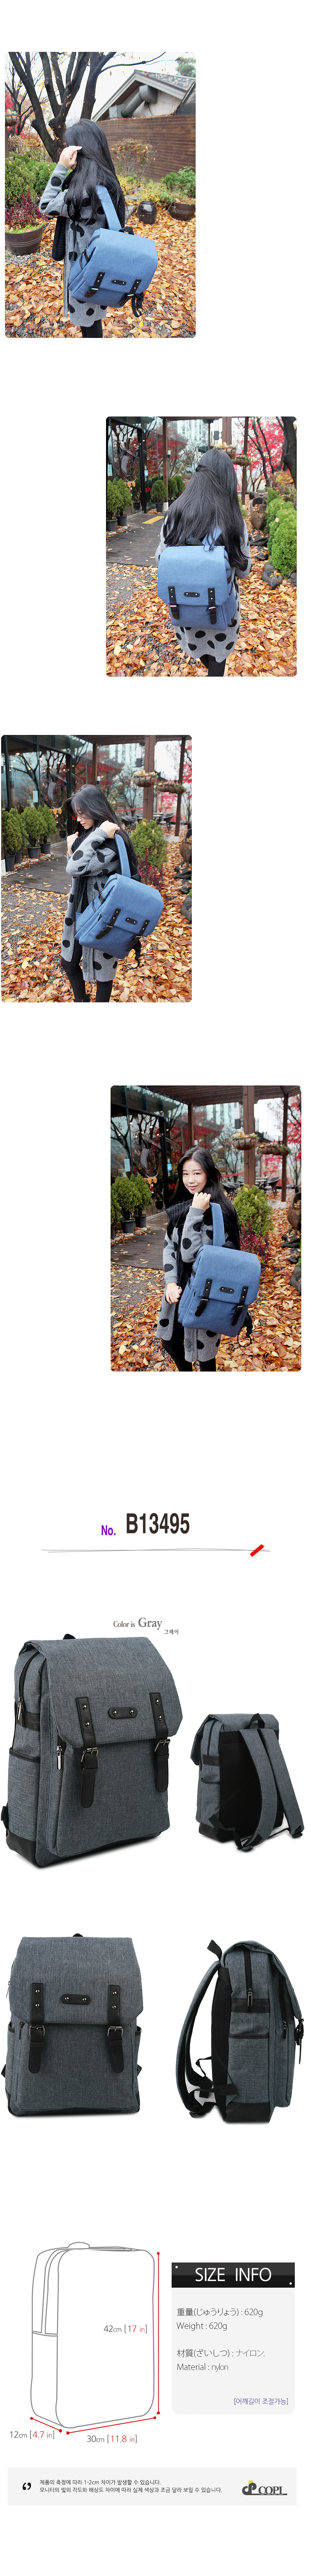 backpack no.B13495view-M